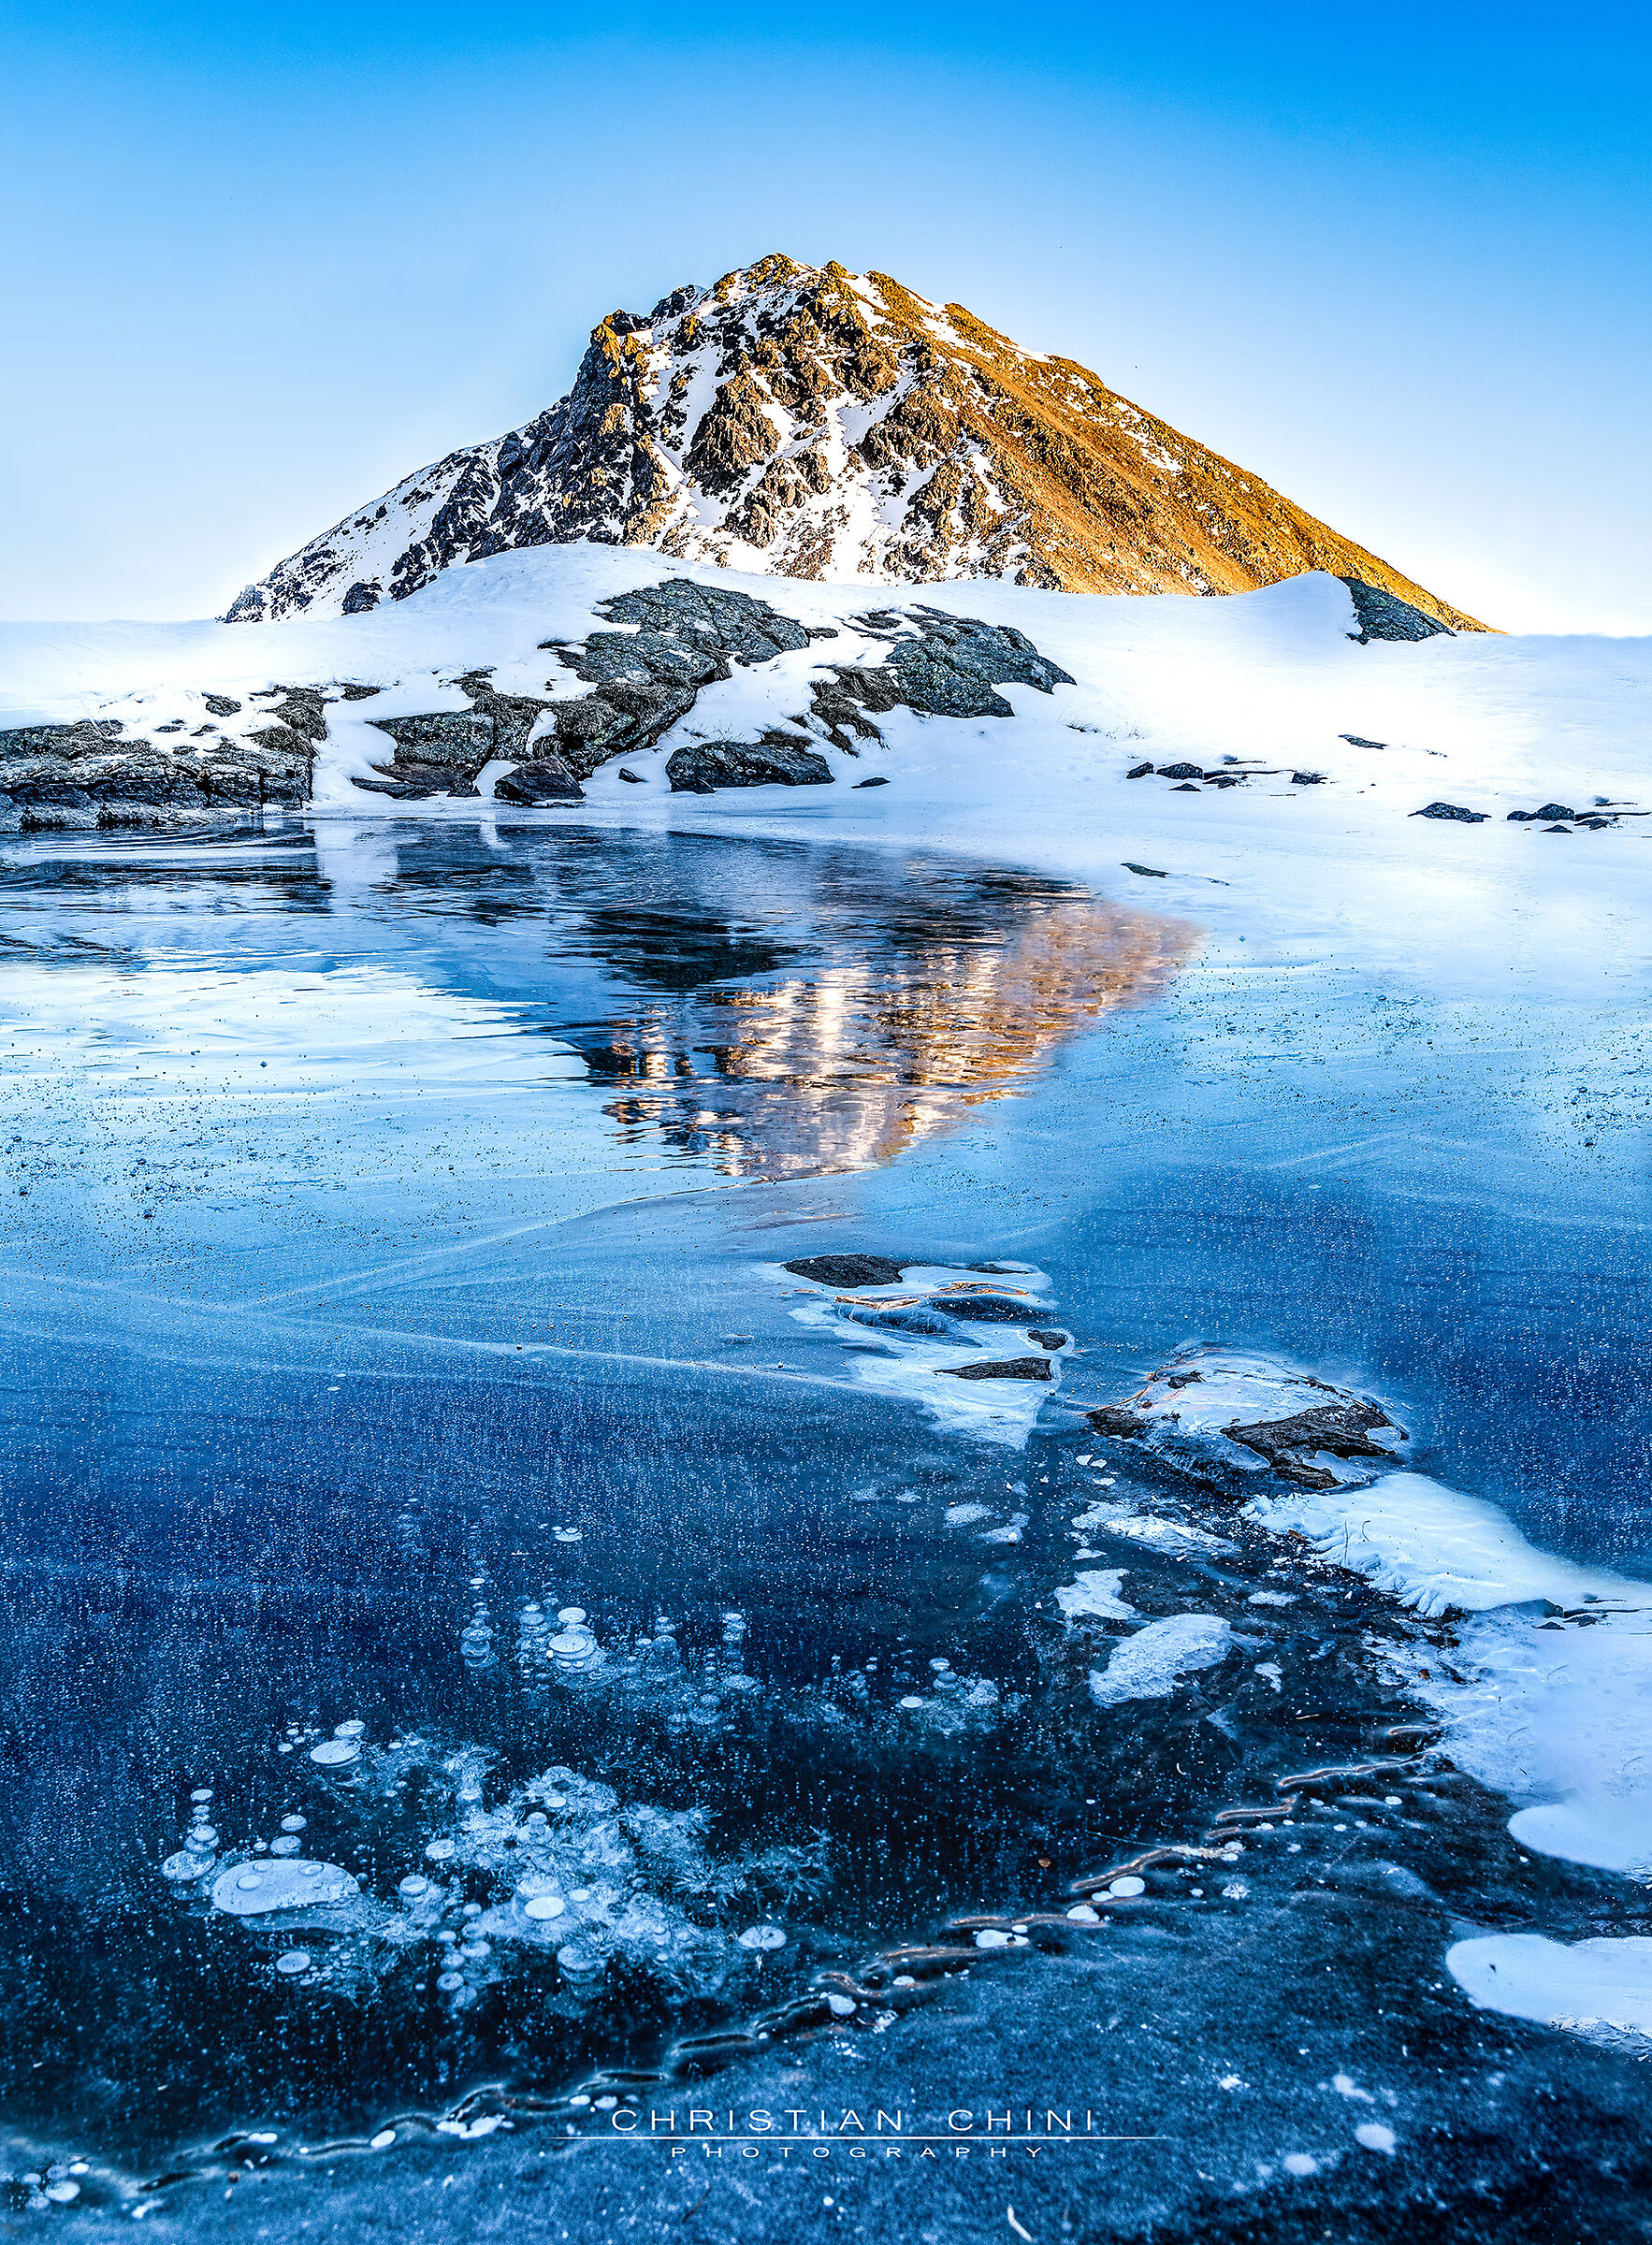 Mountains and bubbles in the ice...